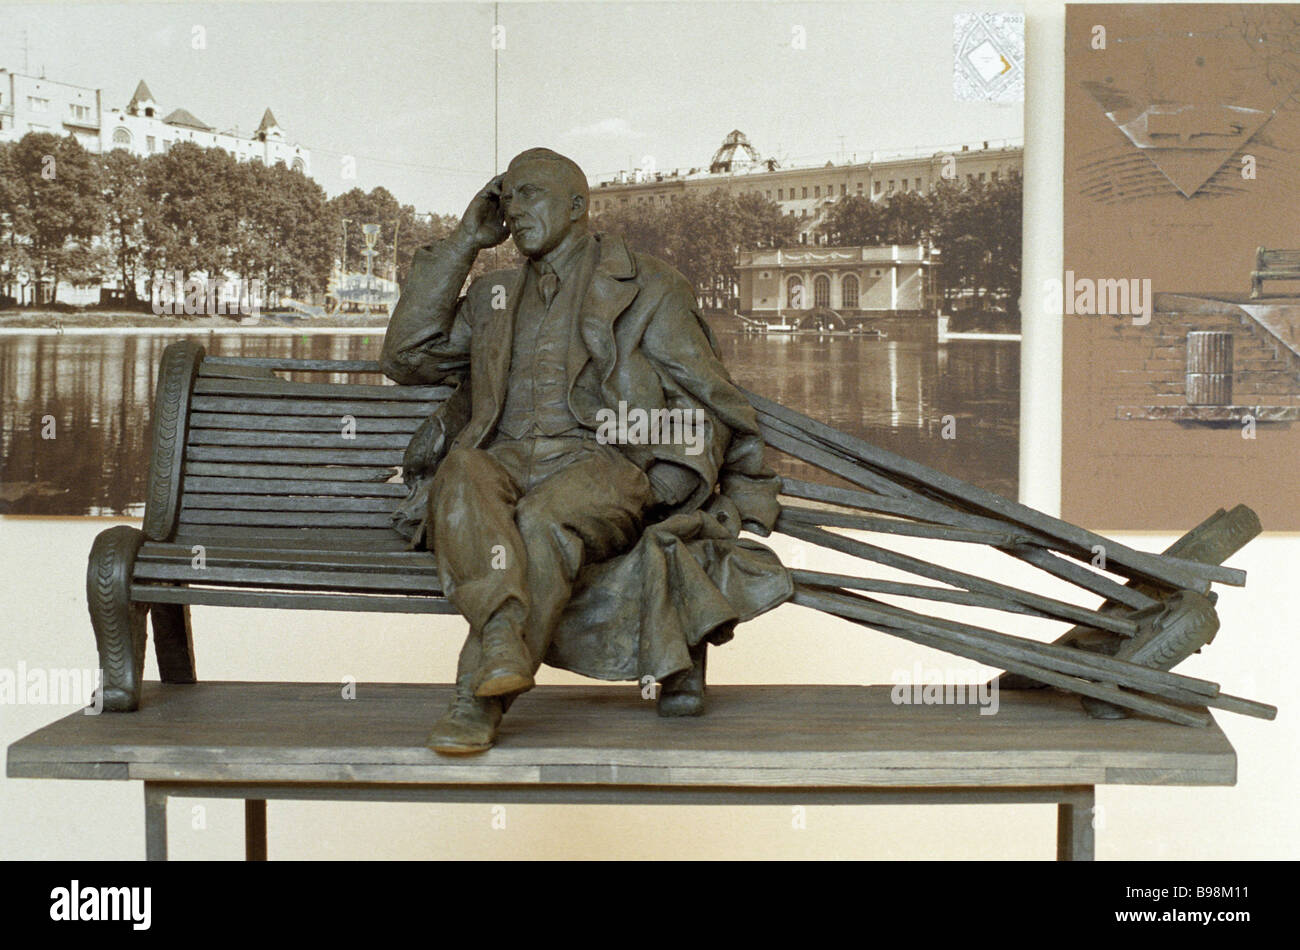 Sculptor Alexander Rukavishnikov s blueprints for a monument to the writer Mikhail Bulgakov - Stock Image